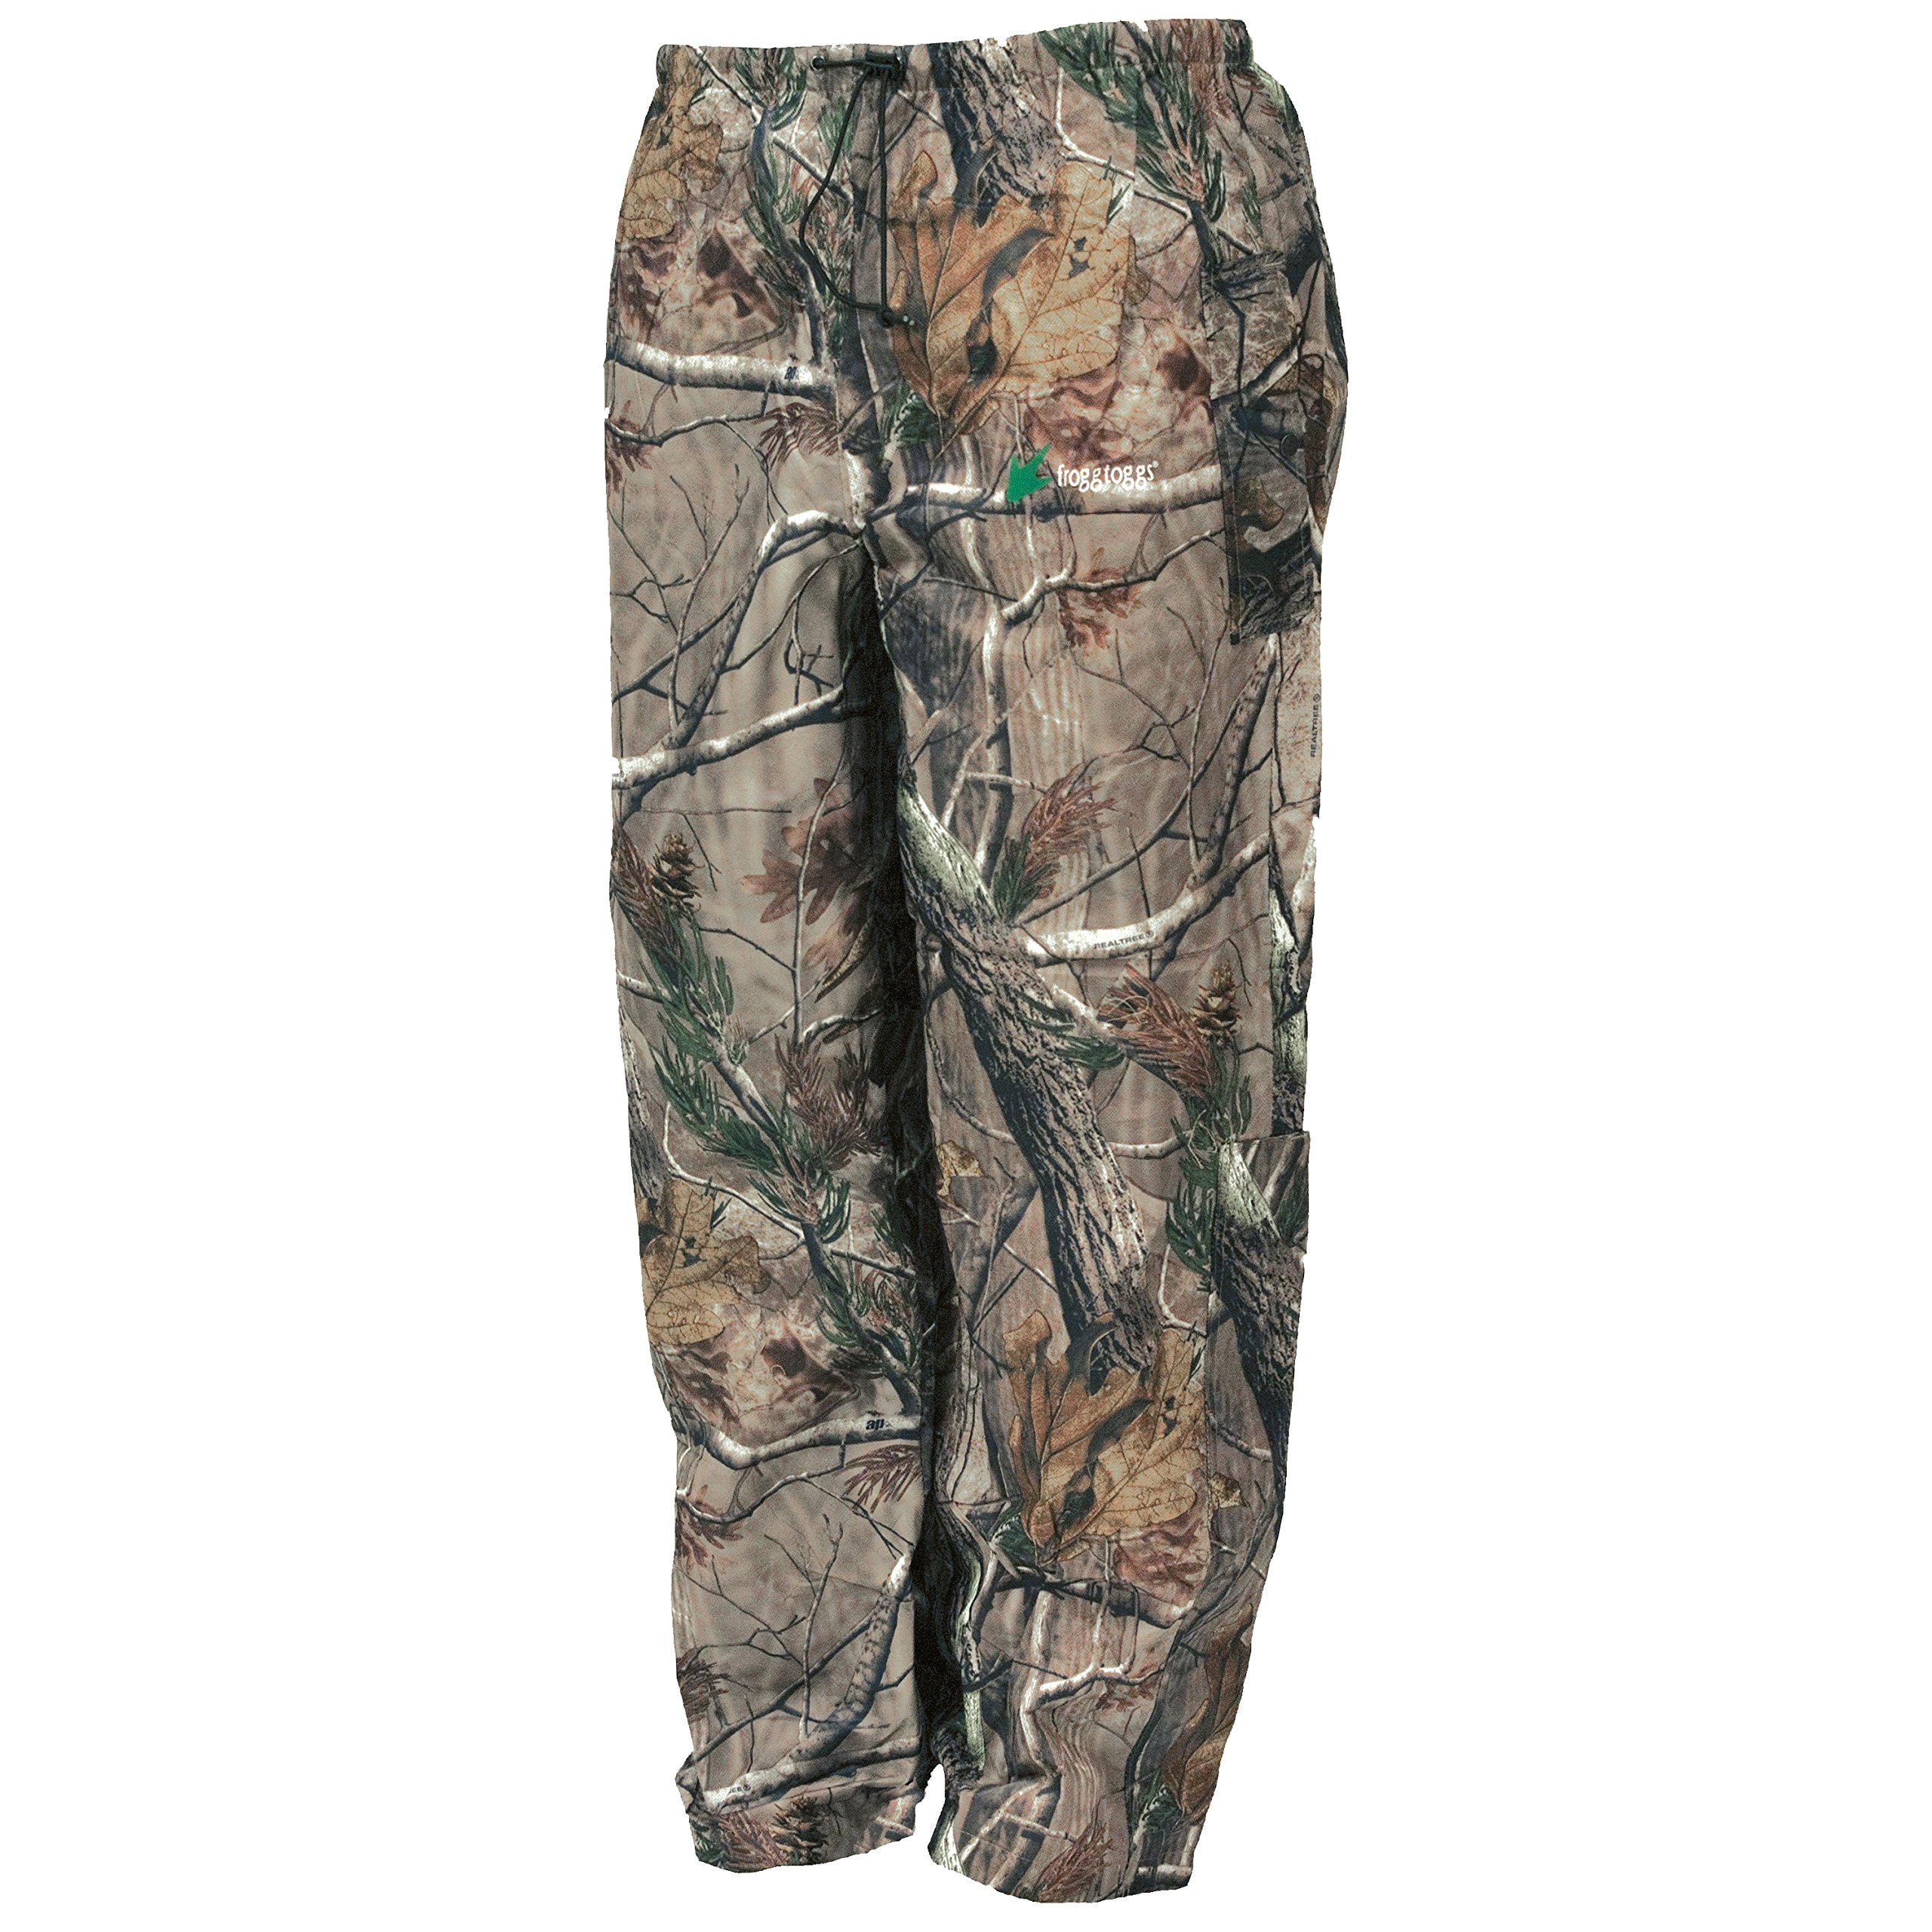 Frogg Toggs Pro Action Water-Resistant Rain Pant, Realtree Xtra, Size Small